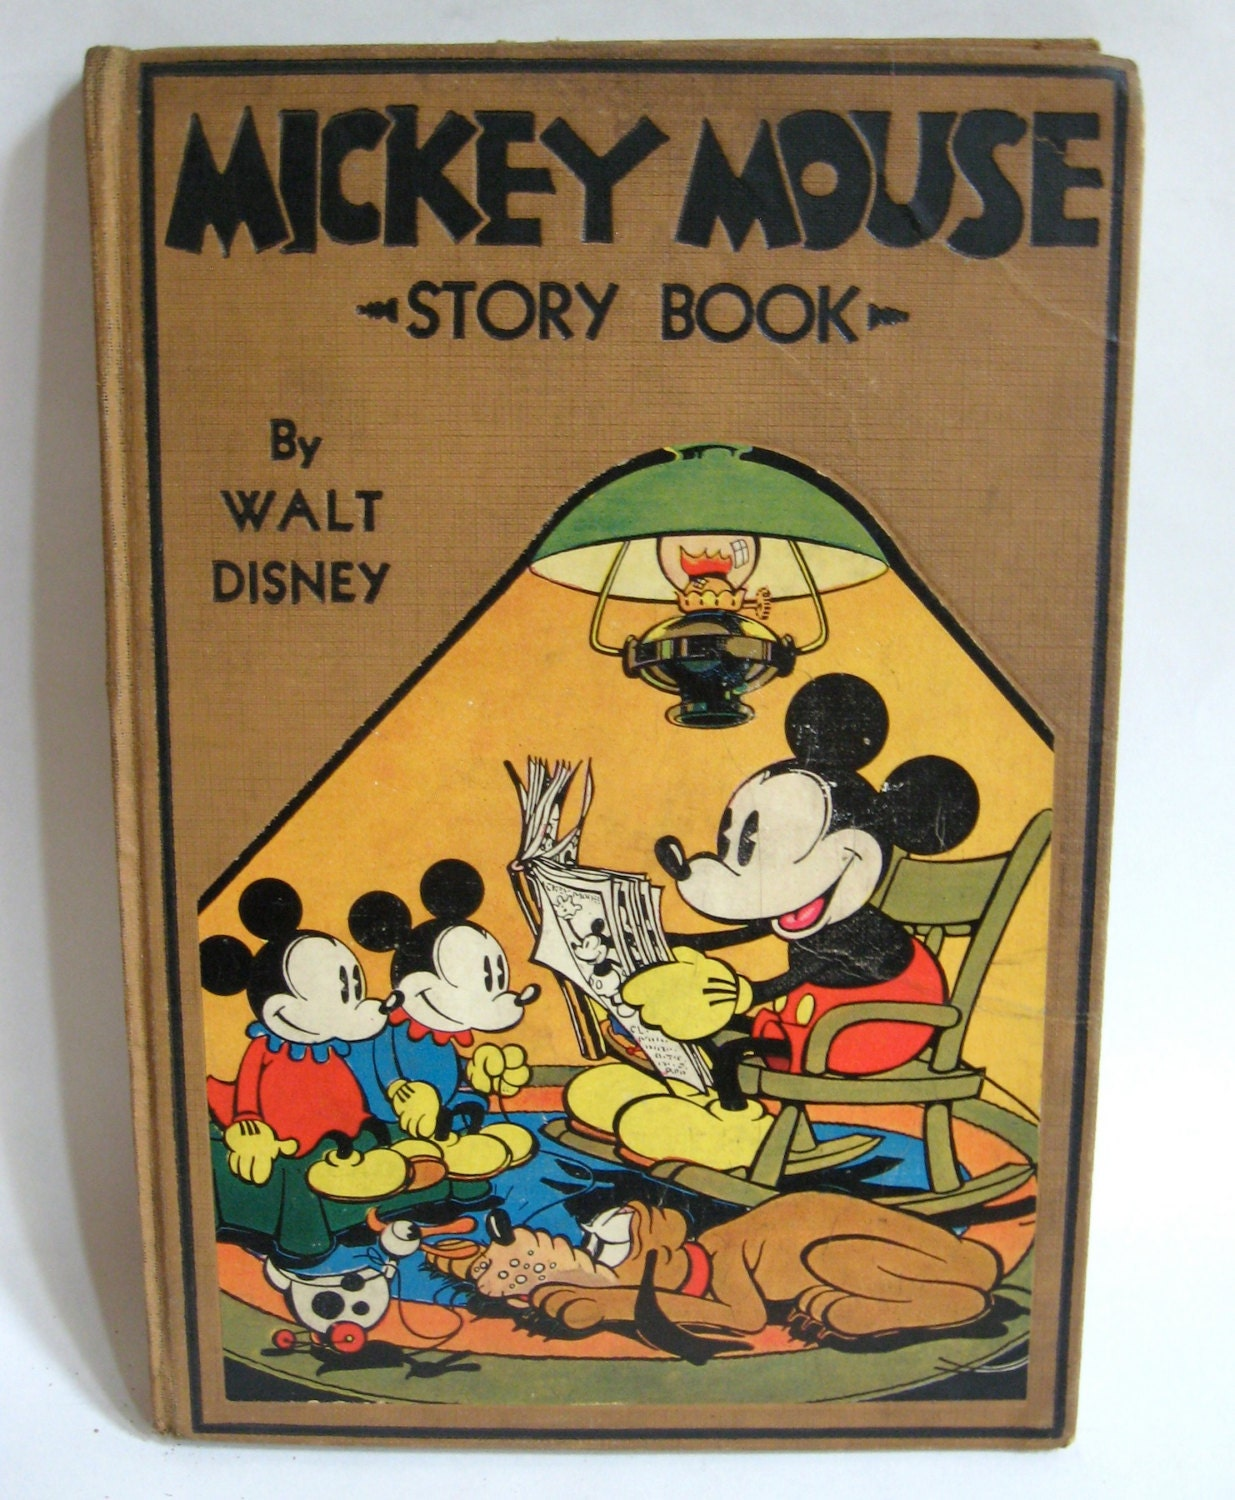 Vintage Hardcover Book : Mickey mouse story book rare walt disney hardcover